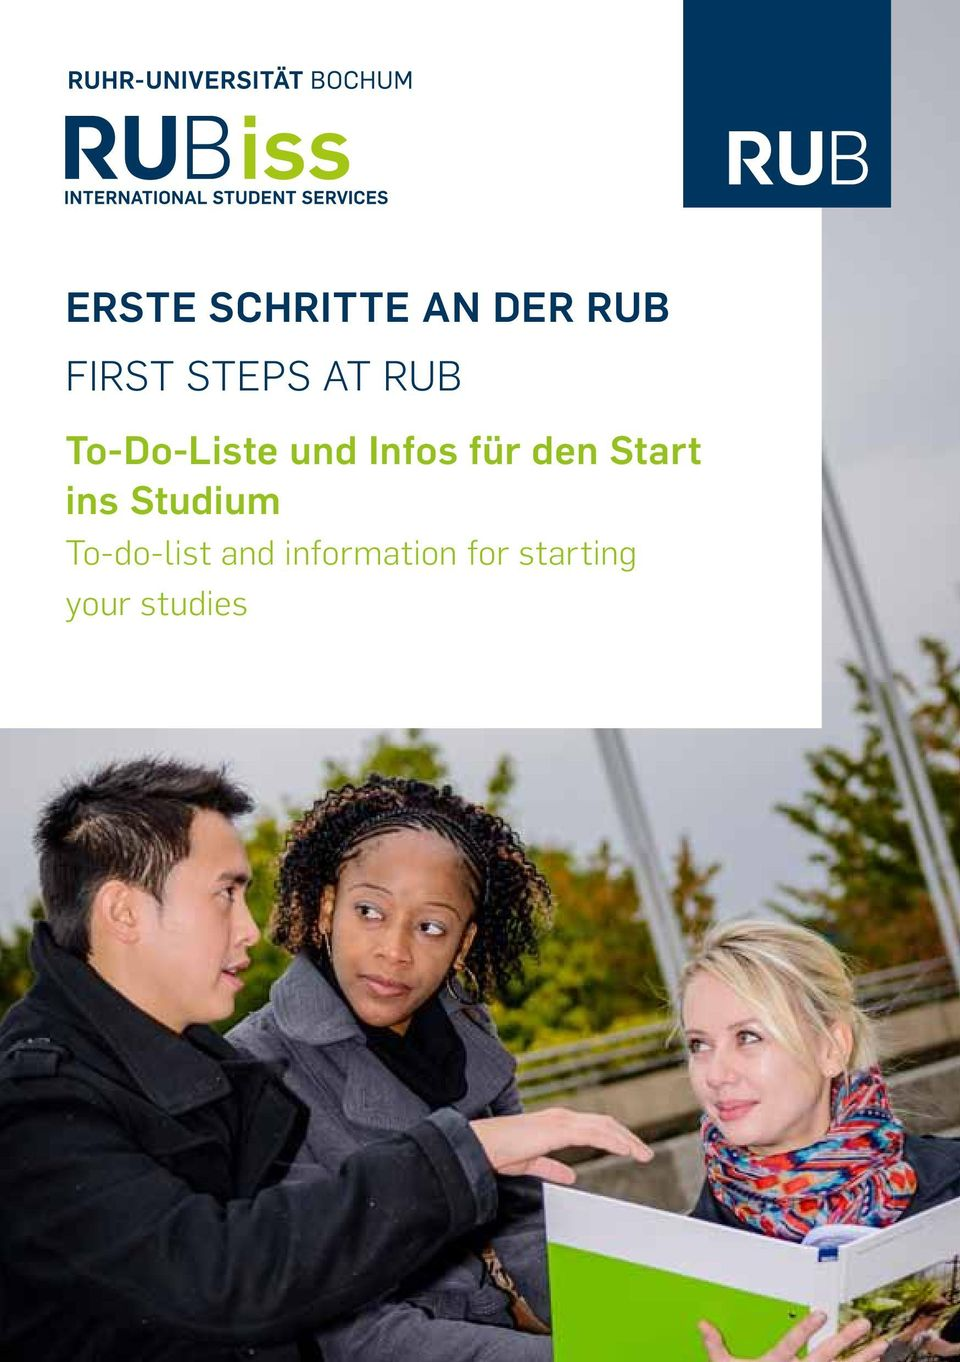 für den Start ns Studum To-do-lst